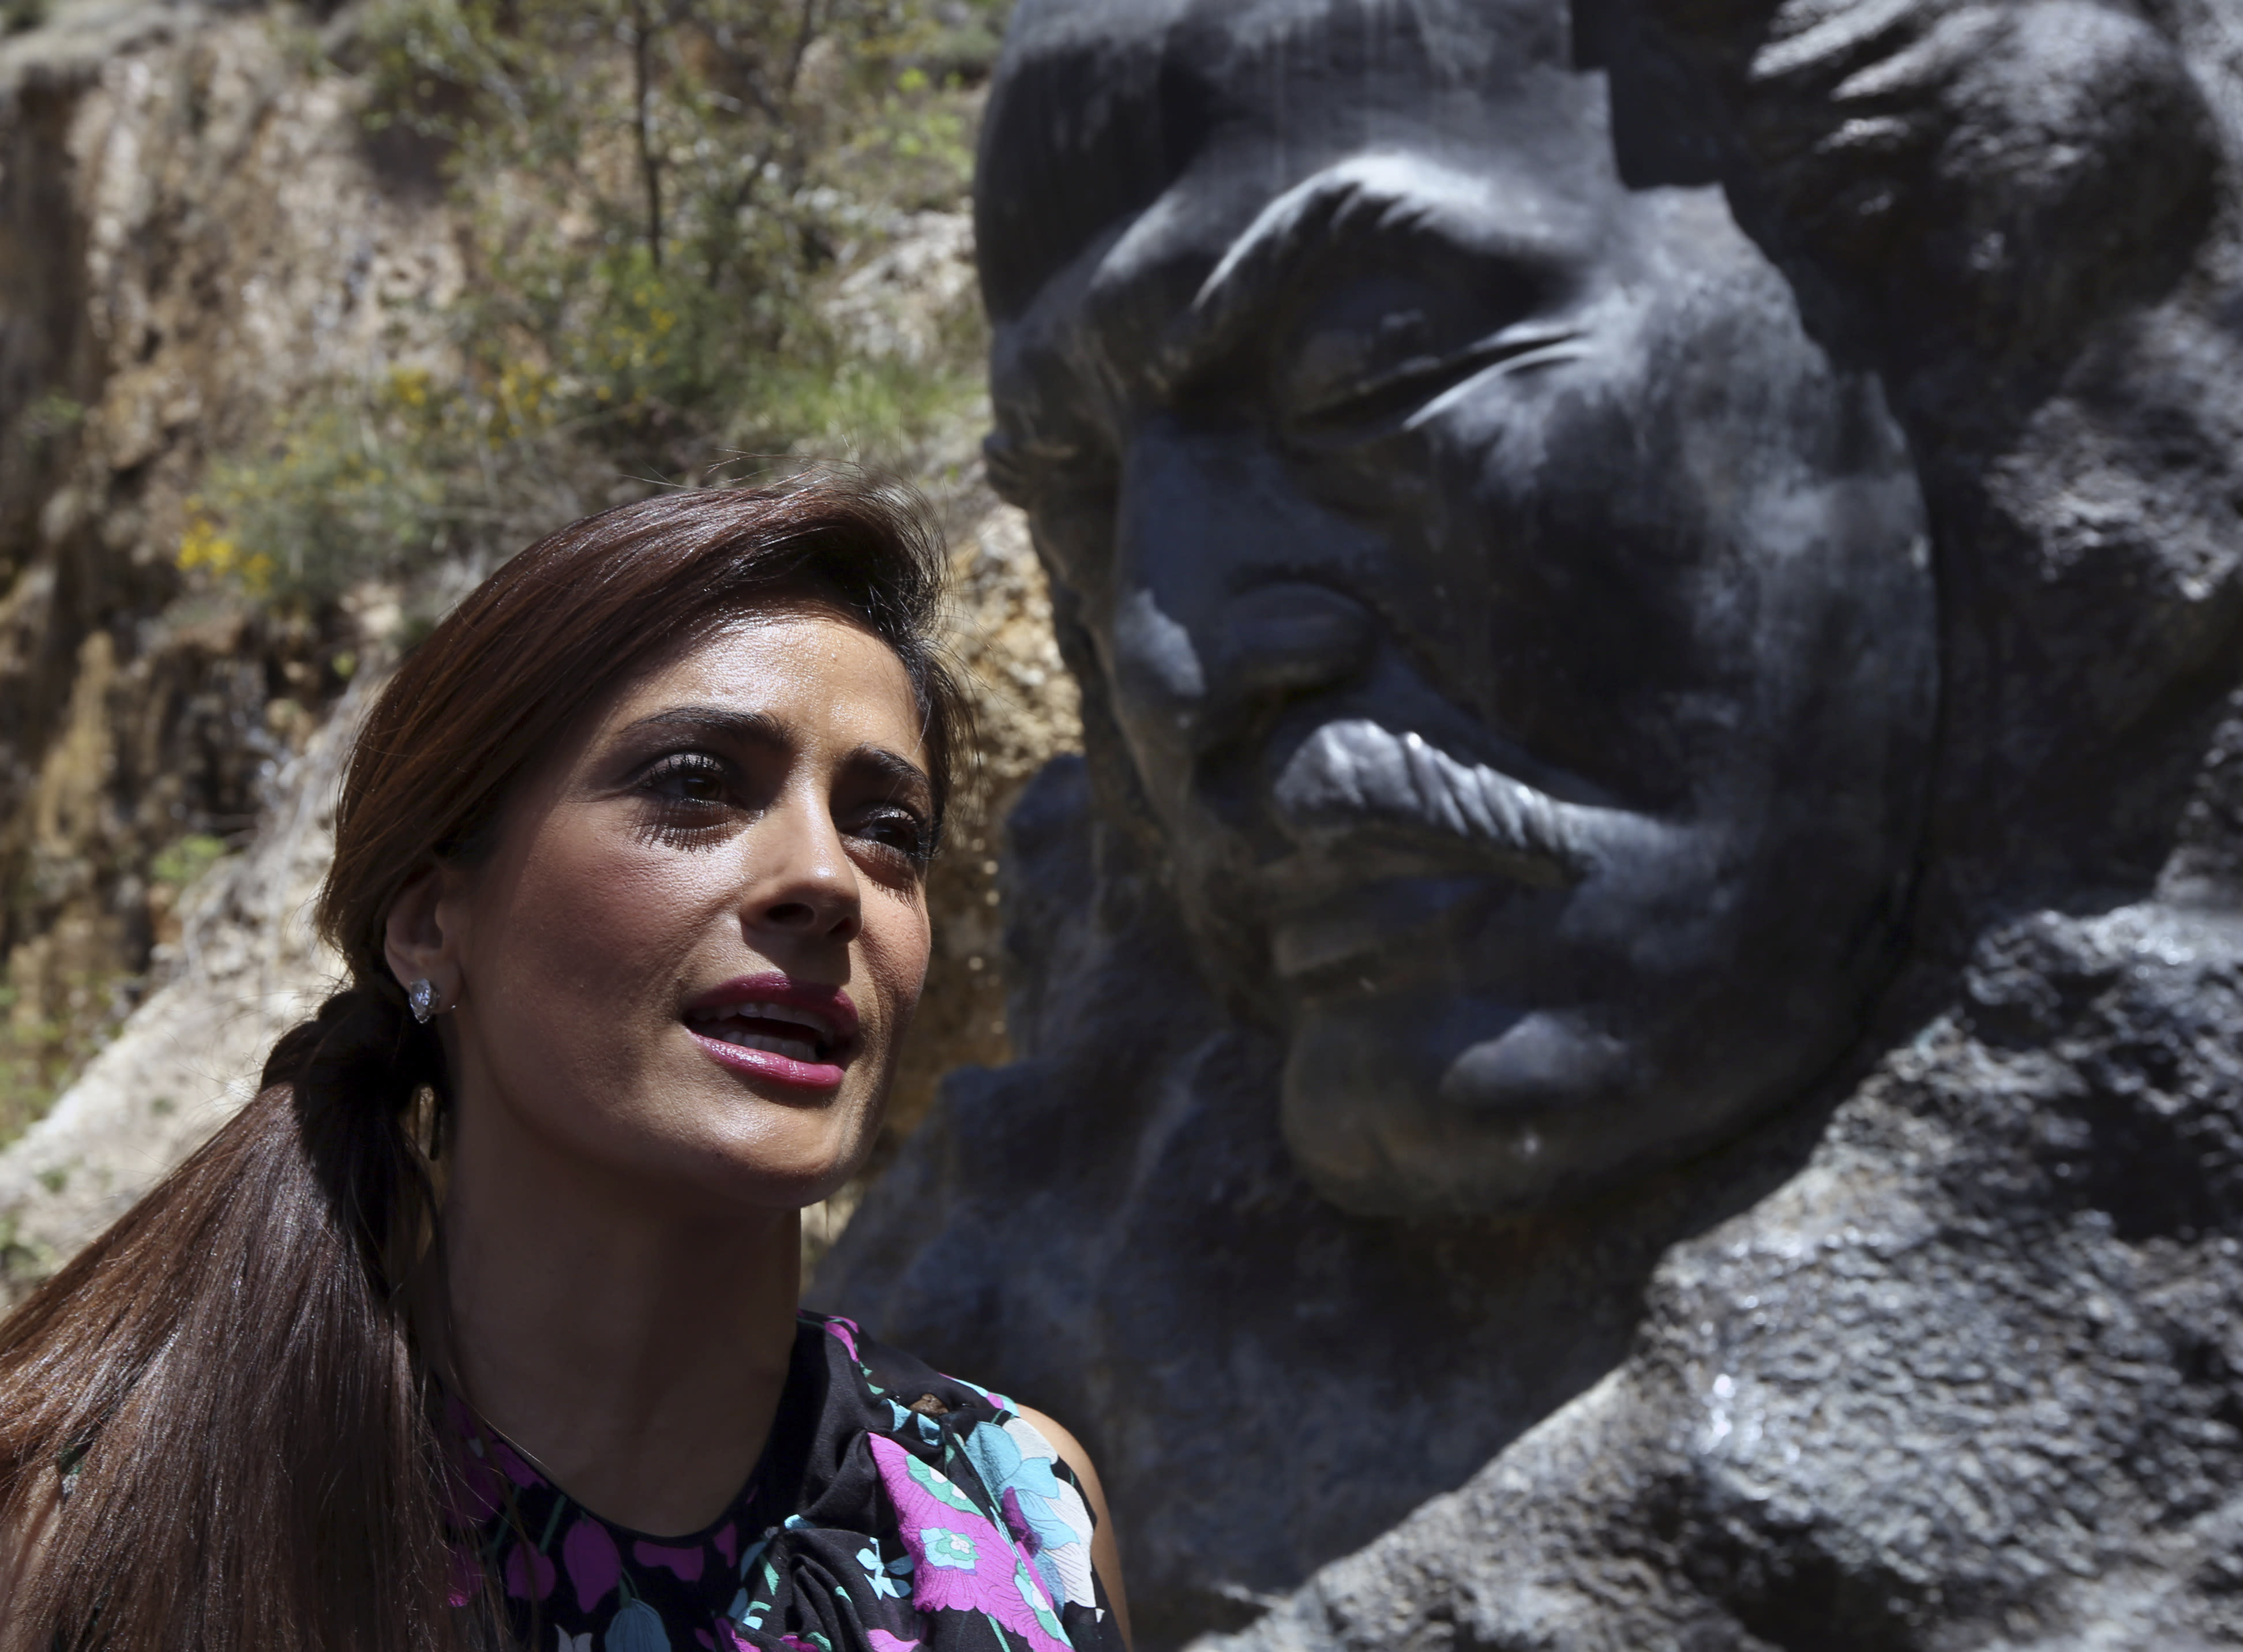 Salma Hayek visits Lebanon to launch film 'The Prophet'